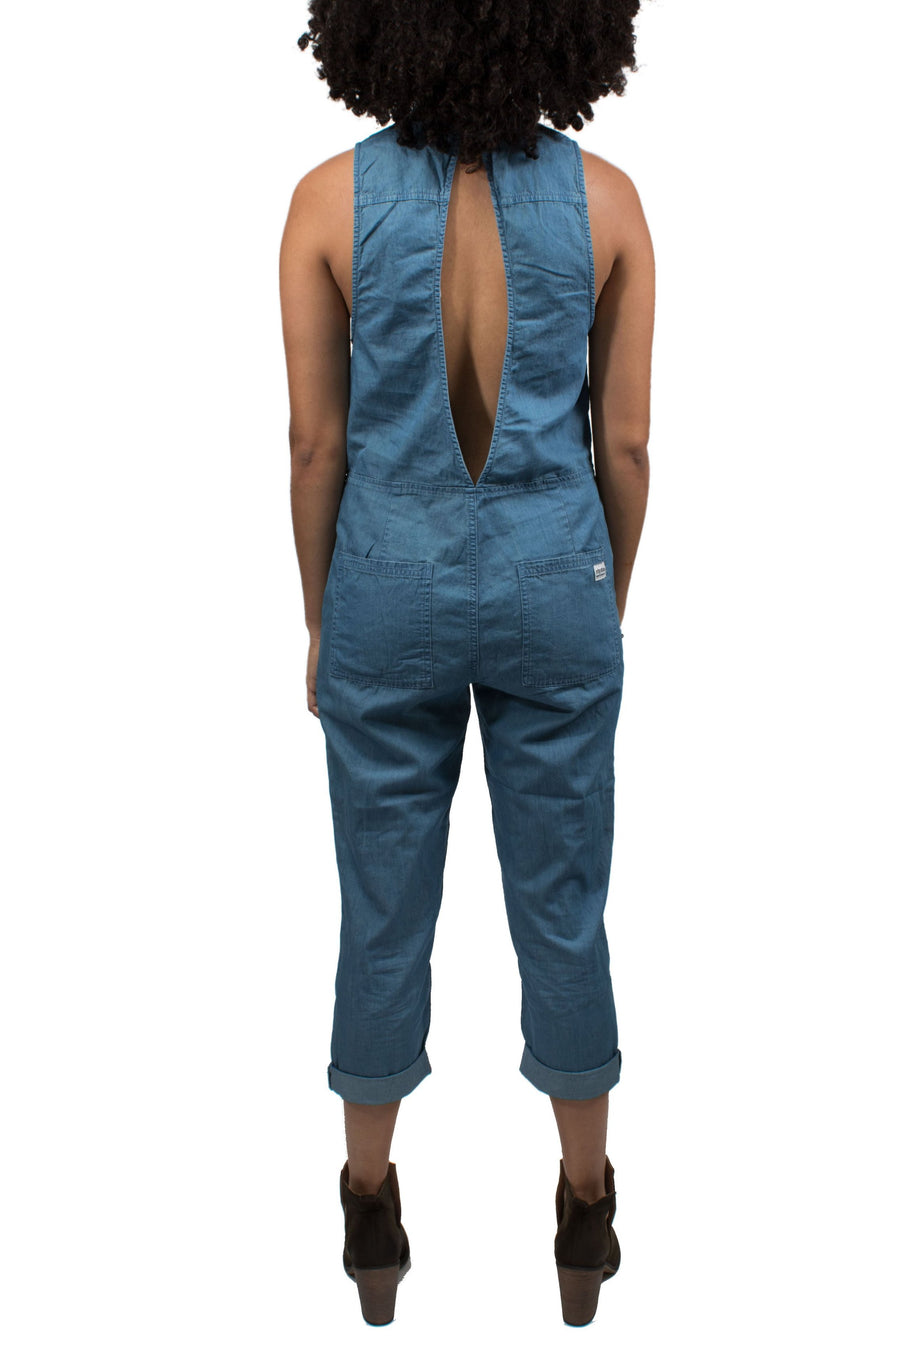 Rhythm Wanderer Jumpsuit - Denim